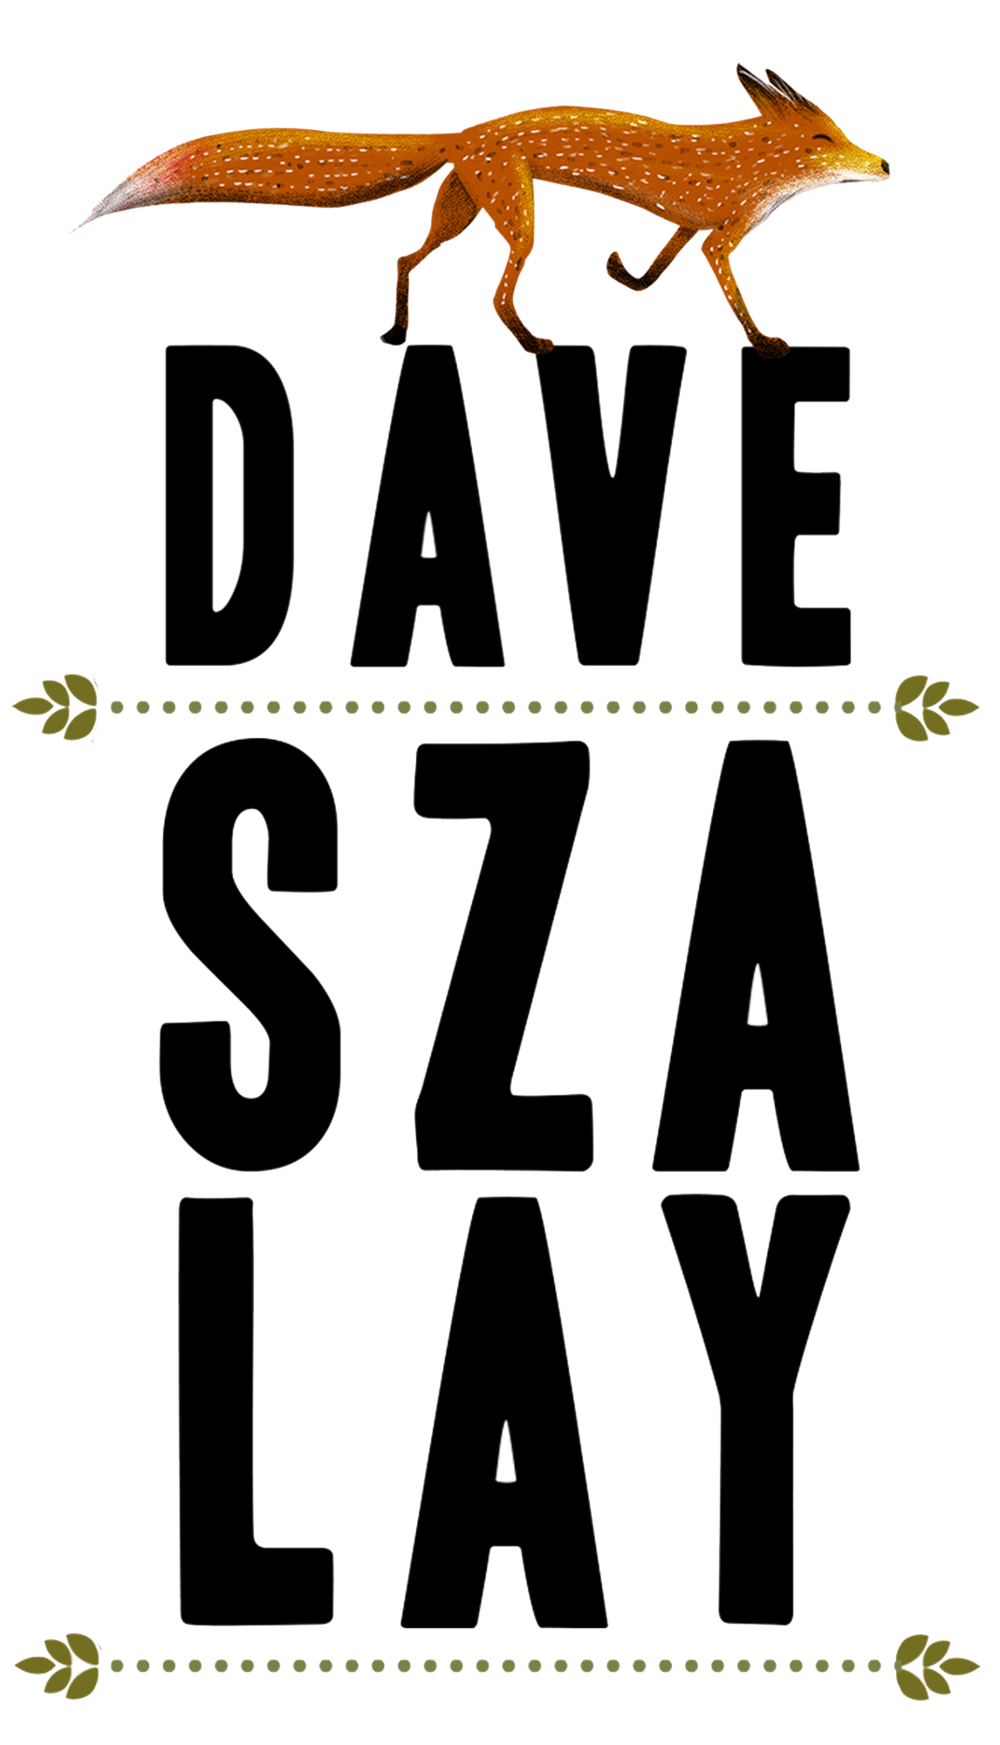 Dave Szalay Illustration